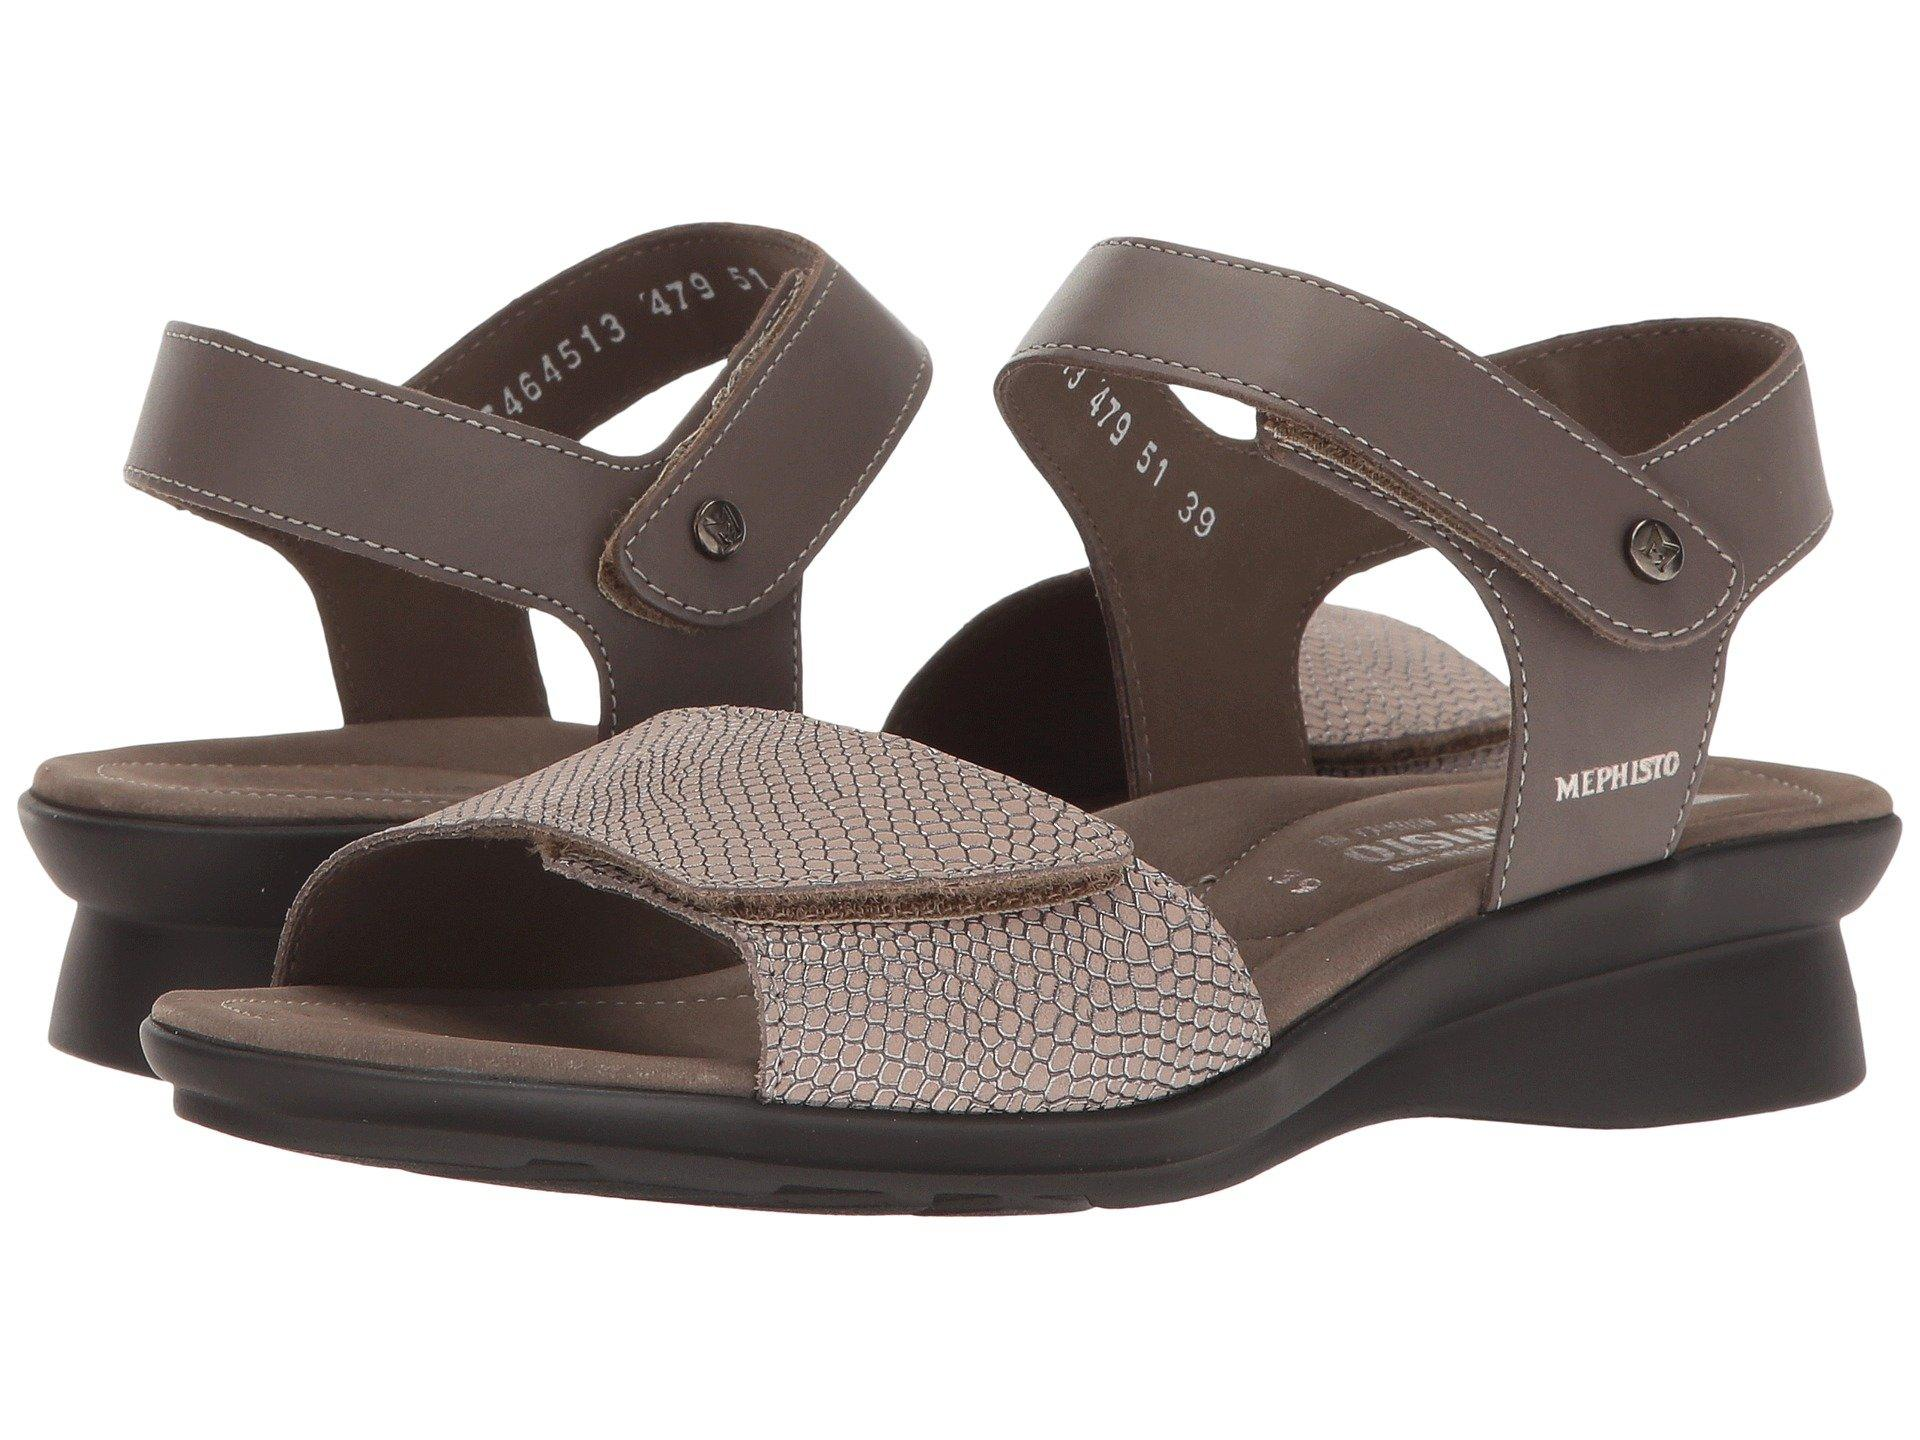 0028839bcd Lyst - Mephisto Pattie in Gray - Save 52%